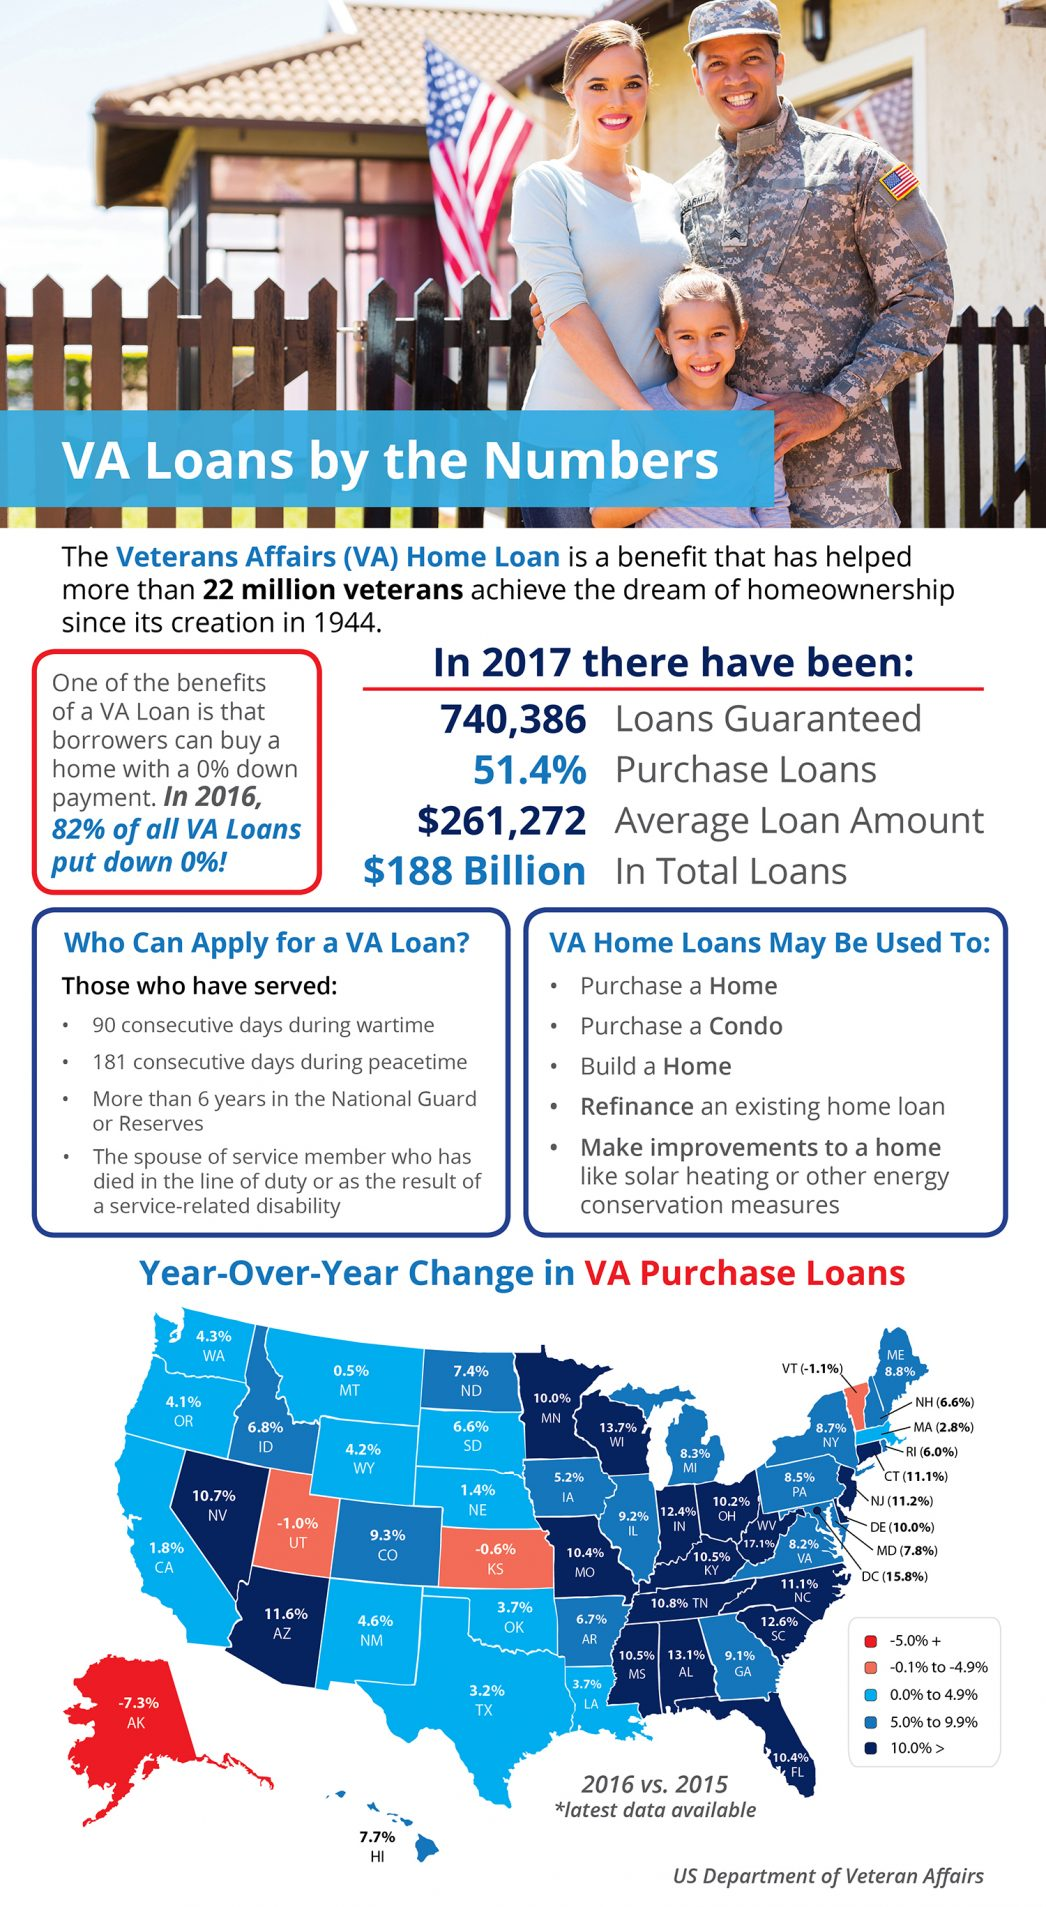 Veterans Affairs Home Loans by the Numbers [INFOGRAPHIC] | MyKCM